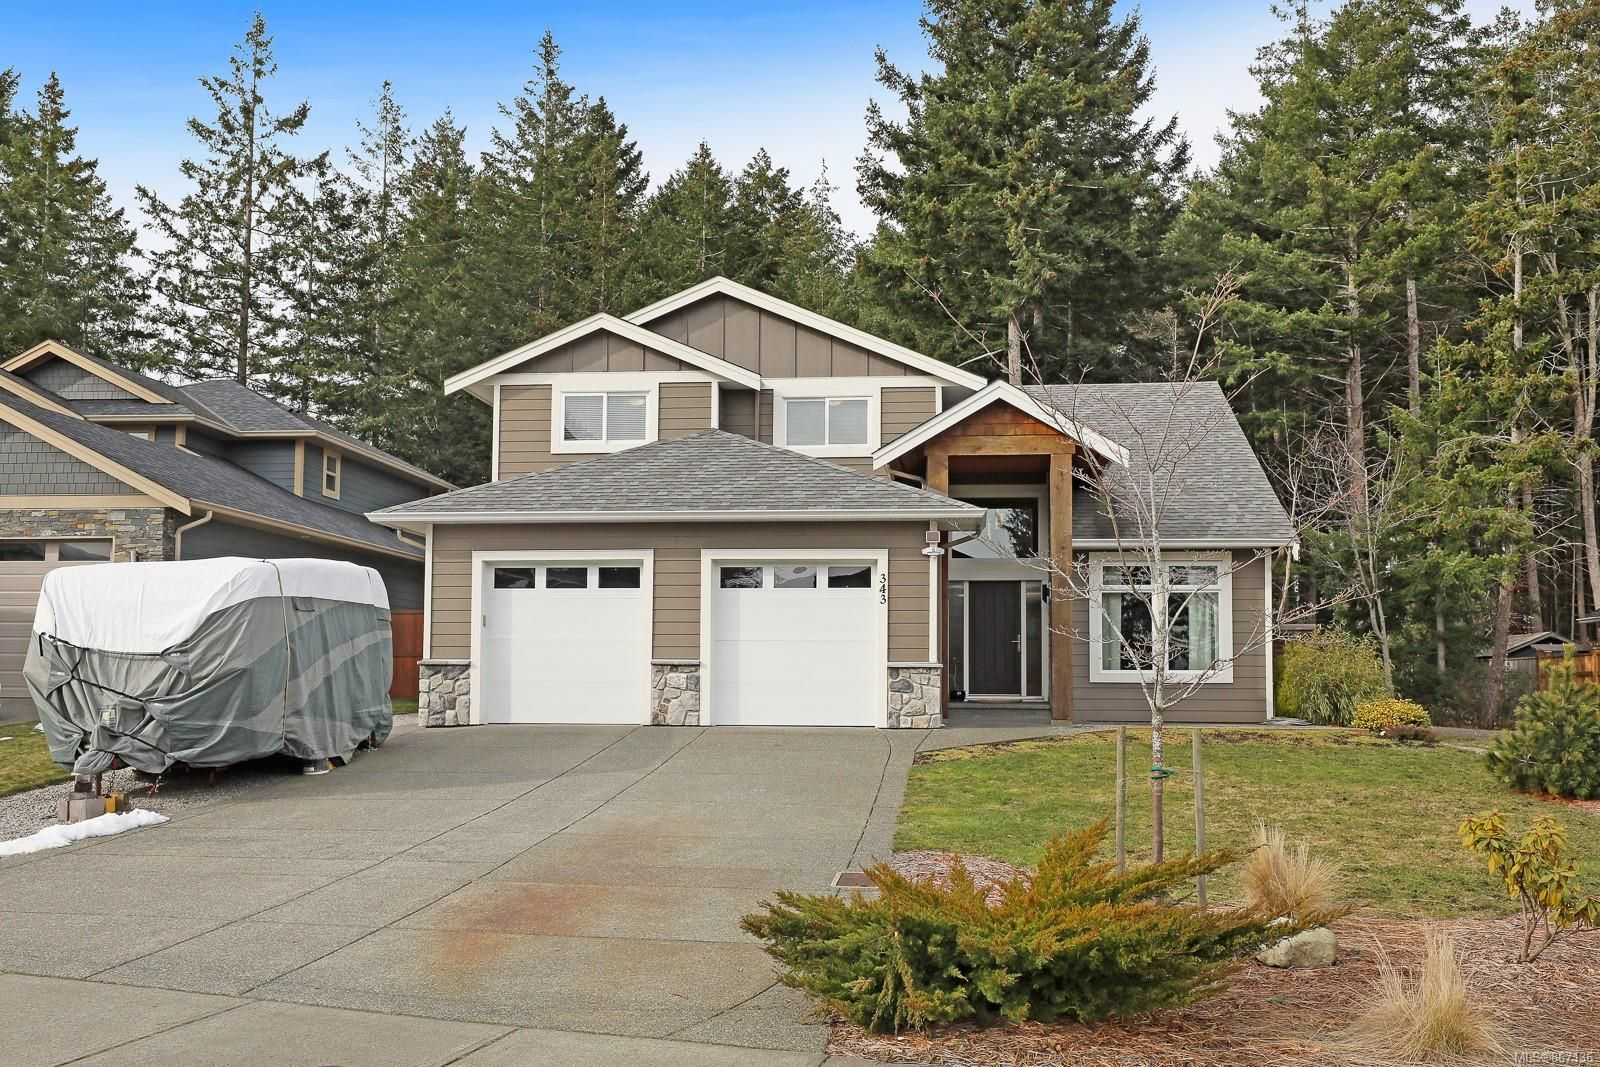 Main Photo: 343 Ensign St in : CV Comox (Town of) House for sale (Comox Valley)  : MLS®# 867136